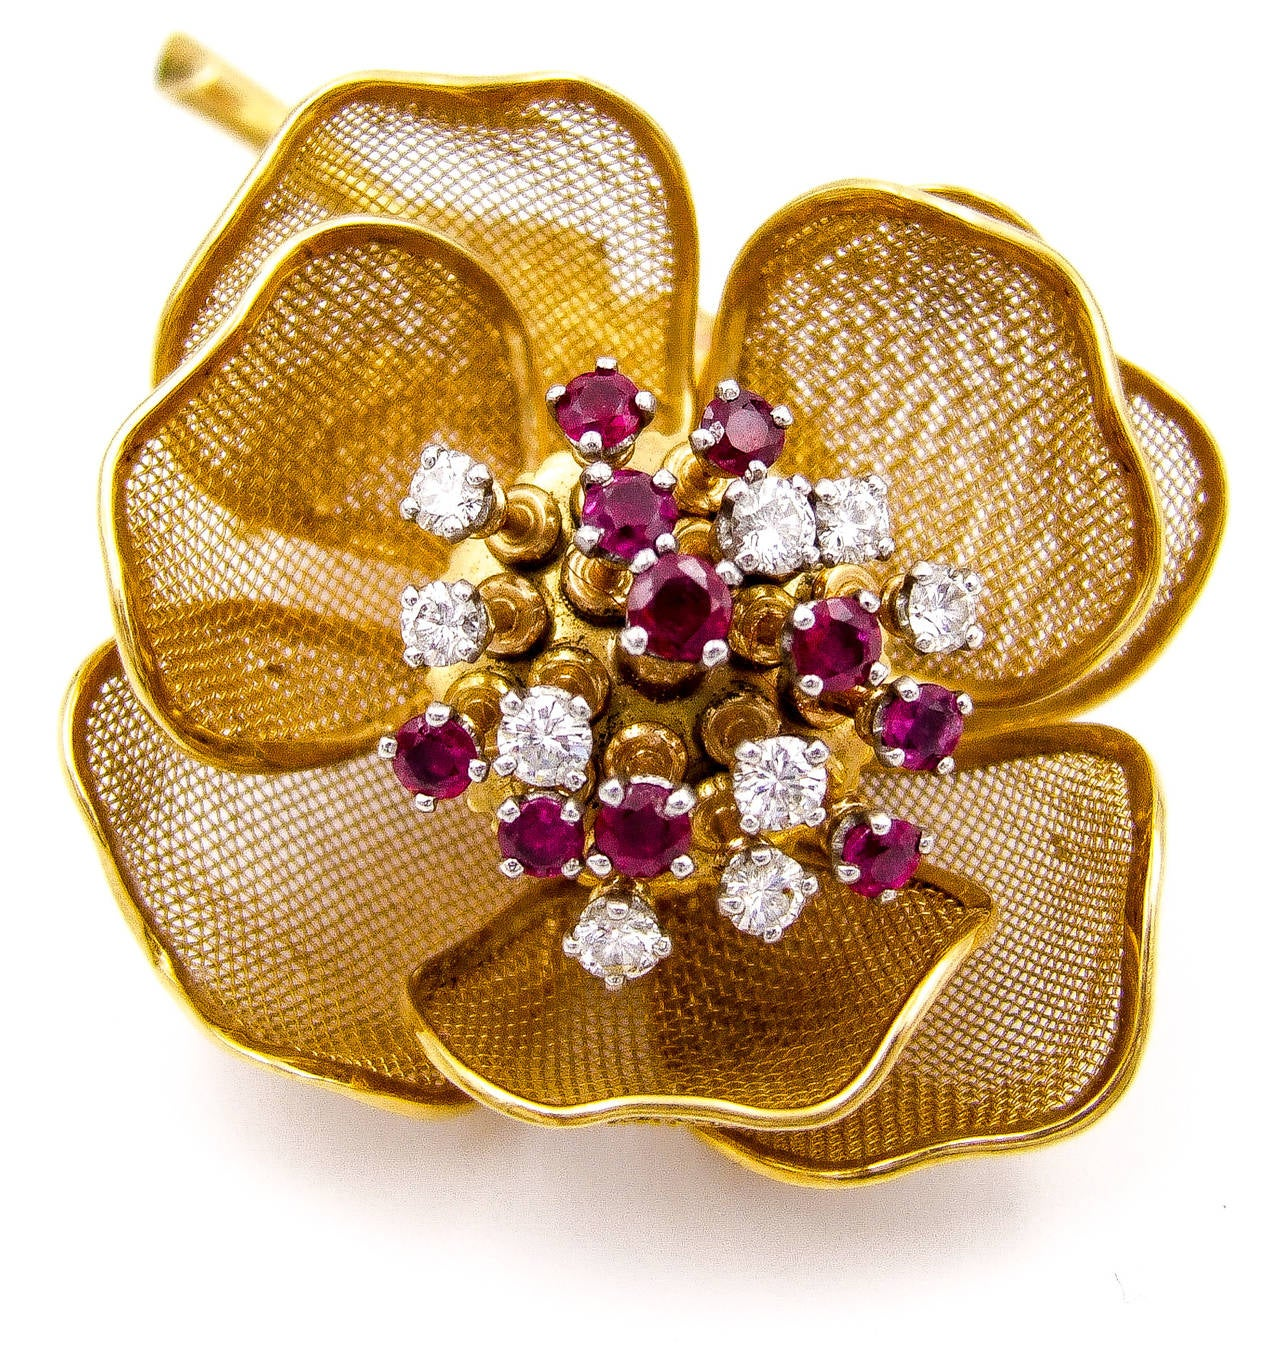 For the flower lover, this brooch is a welcome addition to a gold garden. The center pistils are set with rubies and diamonds which move (en tremblant) as the wearer moves. The delicate mesh petals surrounding the center can be opened or closed